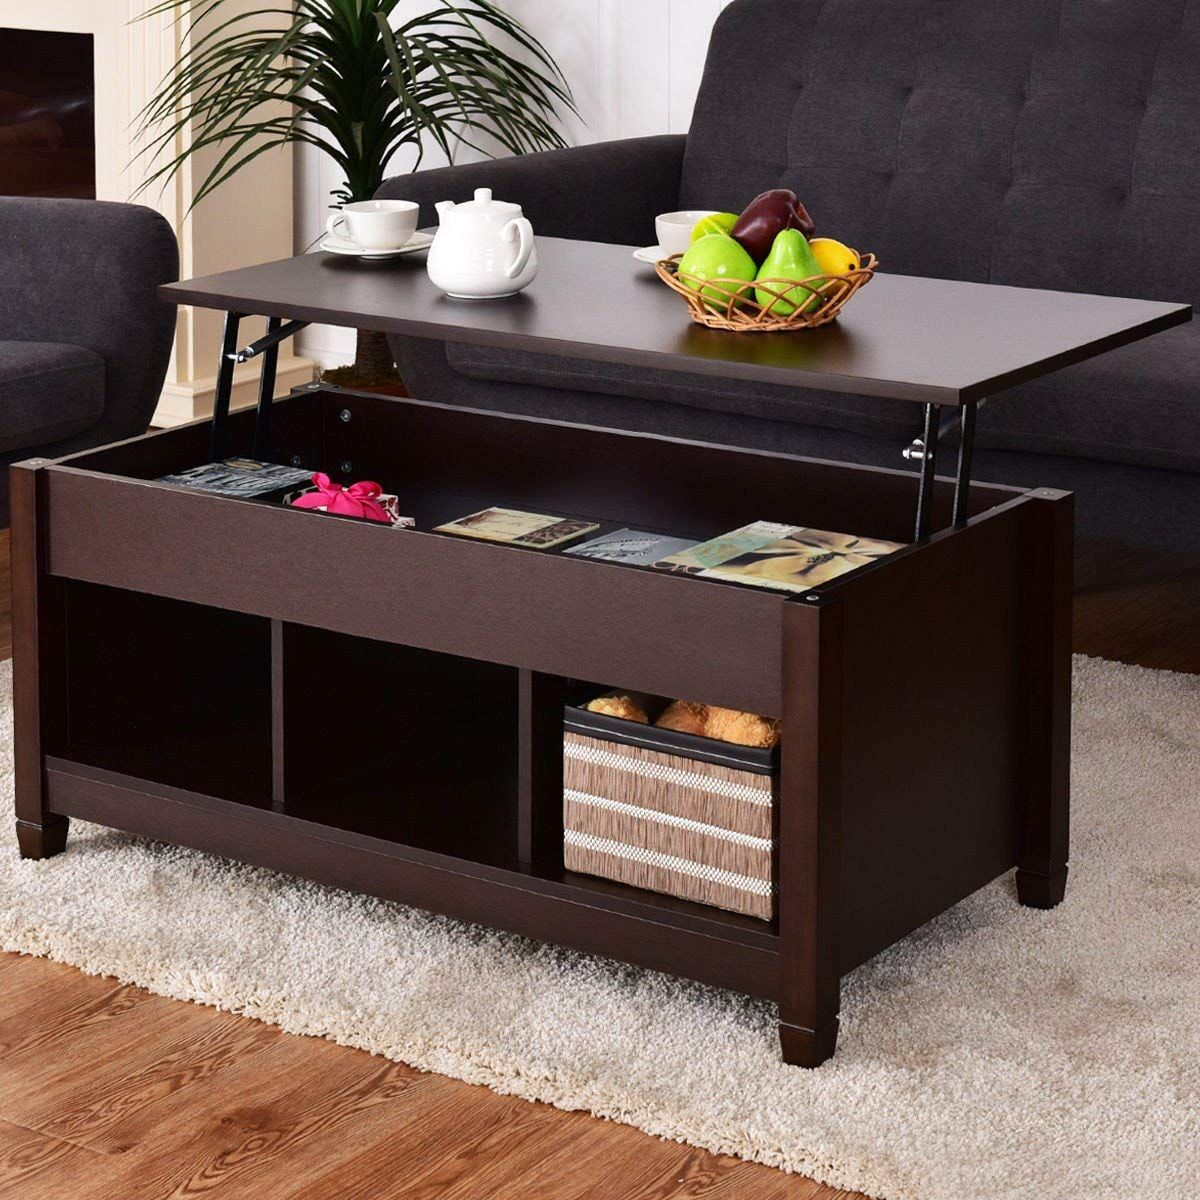 Tangkula Lift Top Coffee Table Modern Living Room Furniture With Hidden Compartment Coffee Table With Hidden Storage Modern Furniture Living Room Coffee Table [ 1200 x 1200 Pixel ]